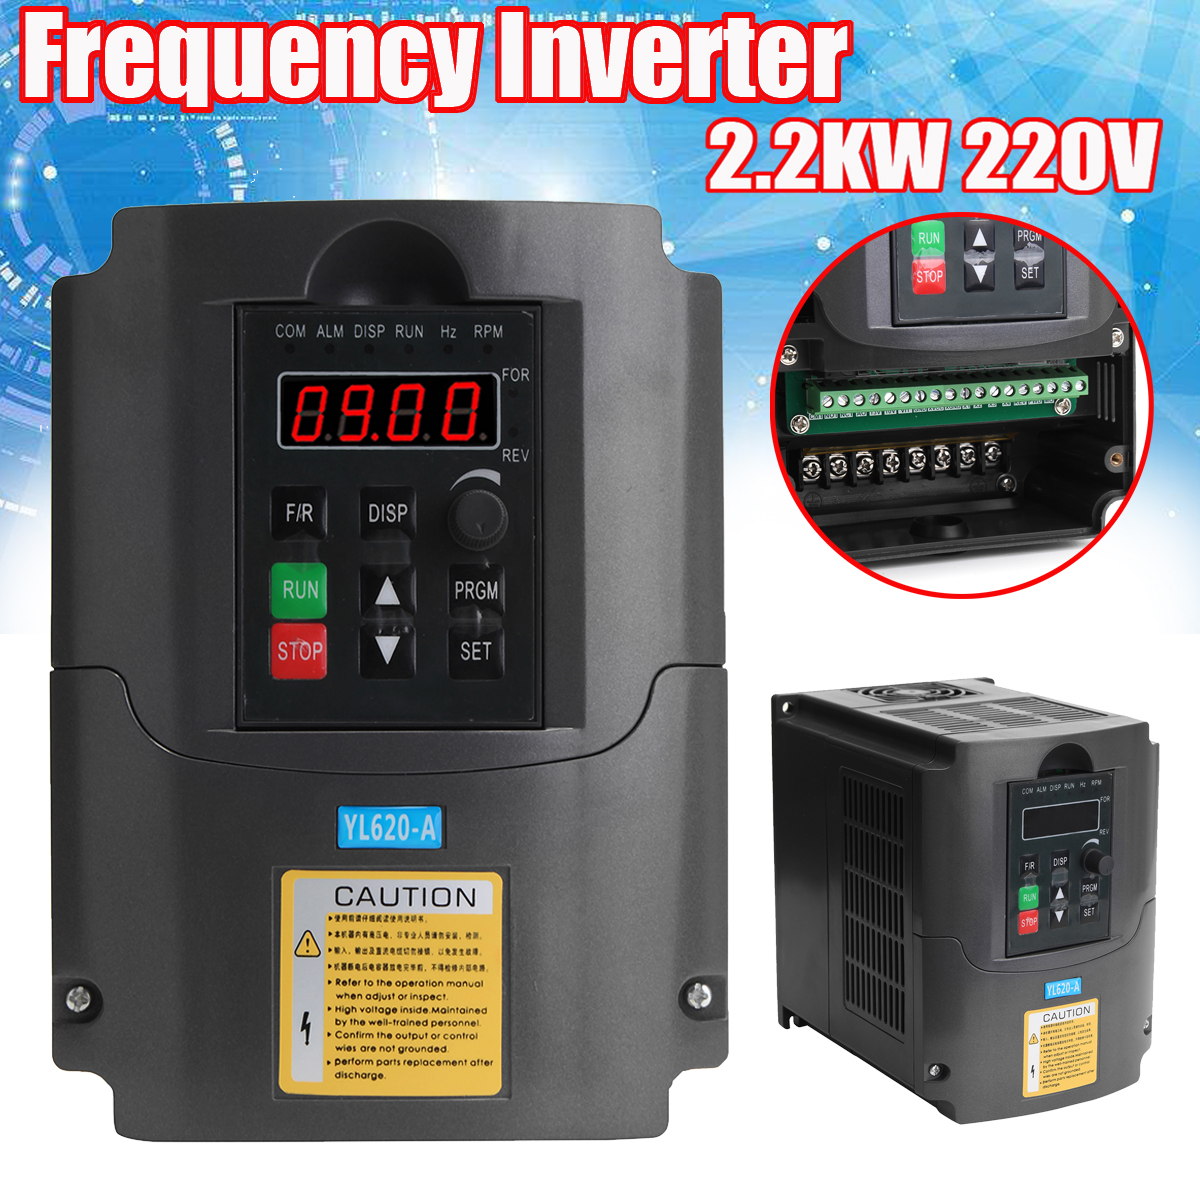 220V 2.2KW AC Variable Frequency Inverter Converter 3 Phase Output Built-in PLC Single Phase Space Voltage Vector Modulation baileigh wl 1840vs heavy duty variable speed wood turning lathe single phase 220v 0 to 3200 rpm inverter driven